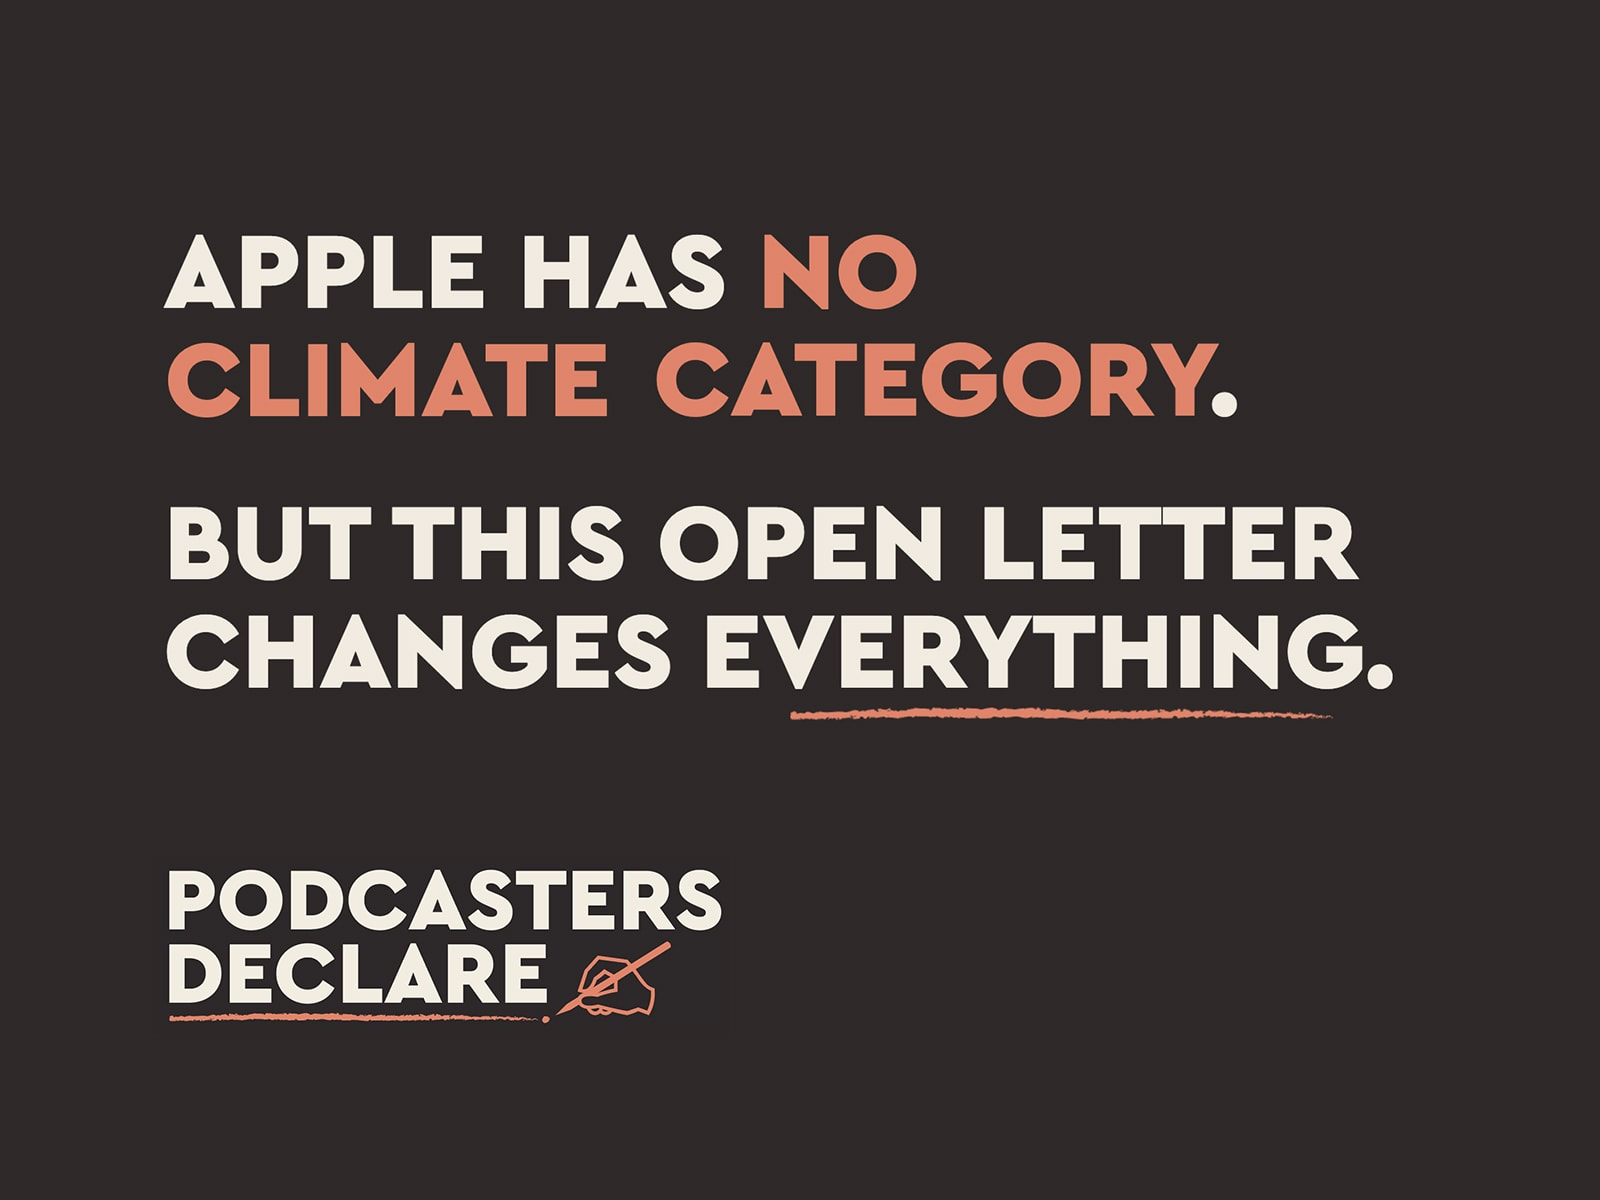 Podcasters Declare campaign message